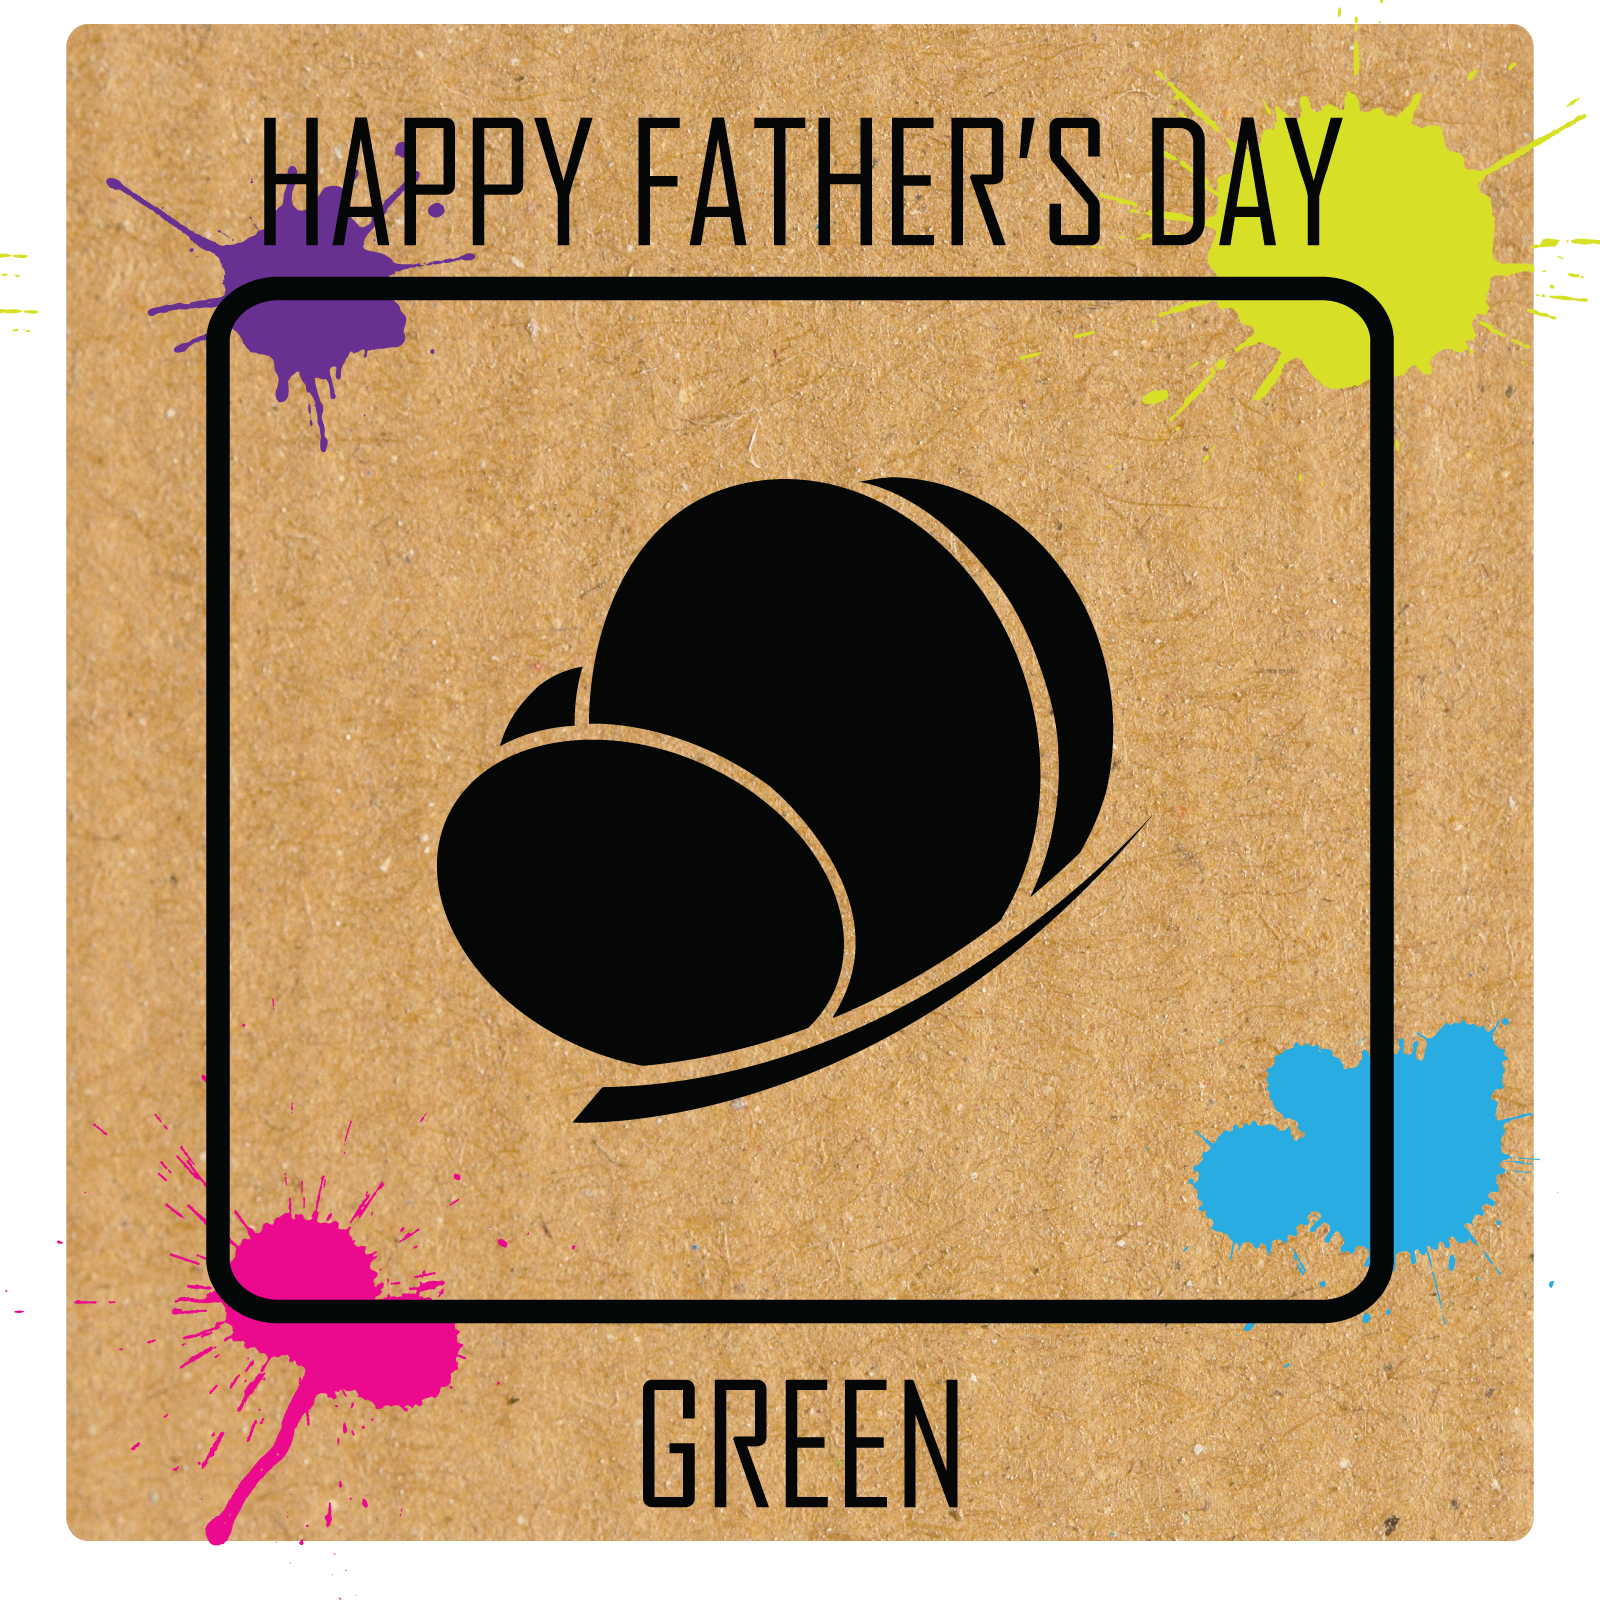 Father's Day Green 2018